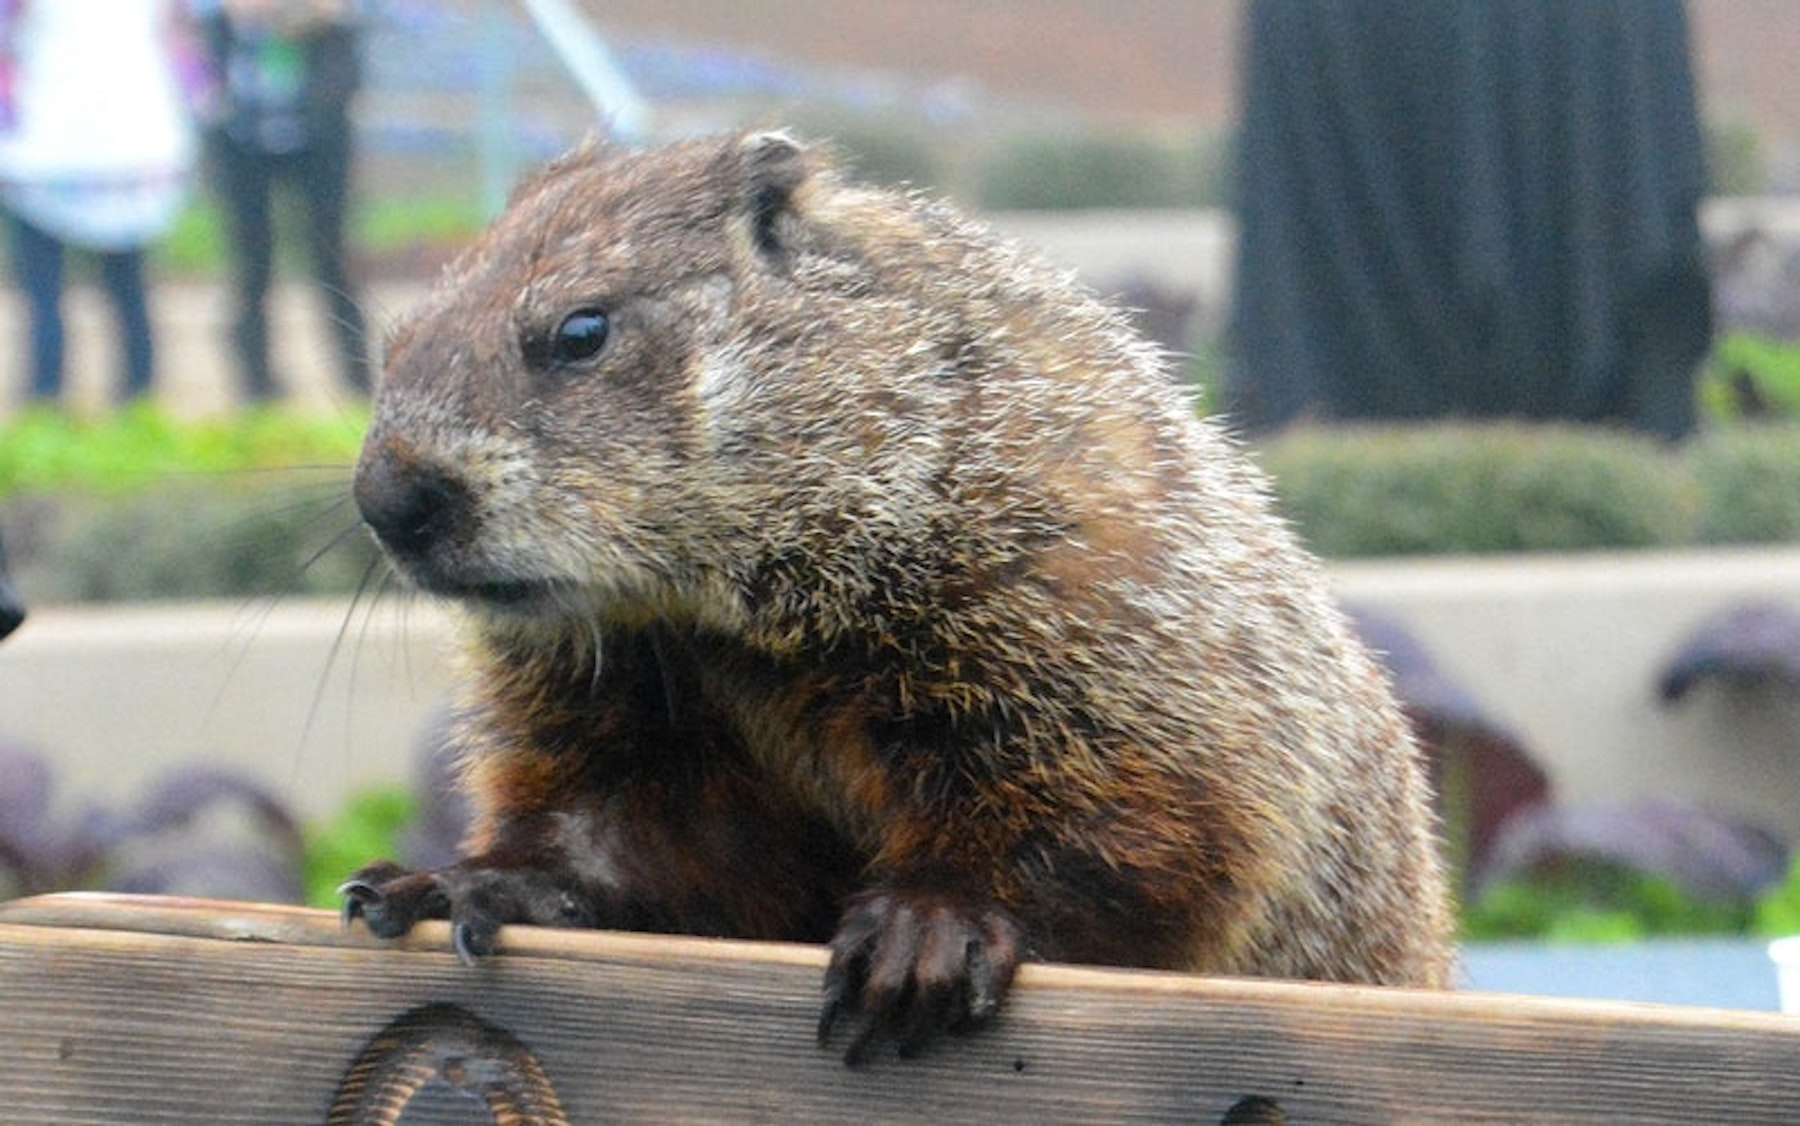 Dallas Arboretum's Groundhog Day